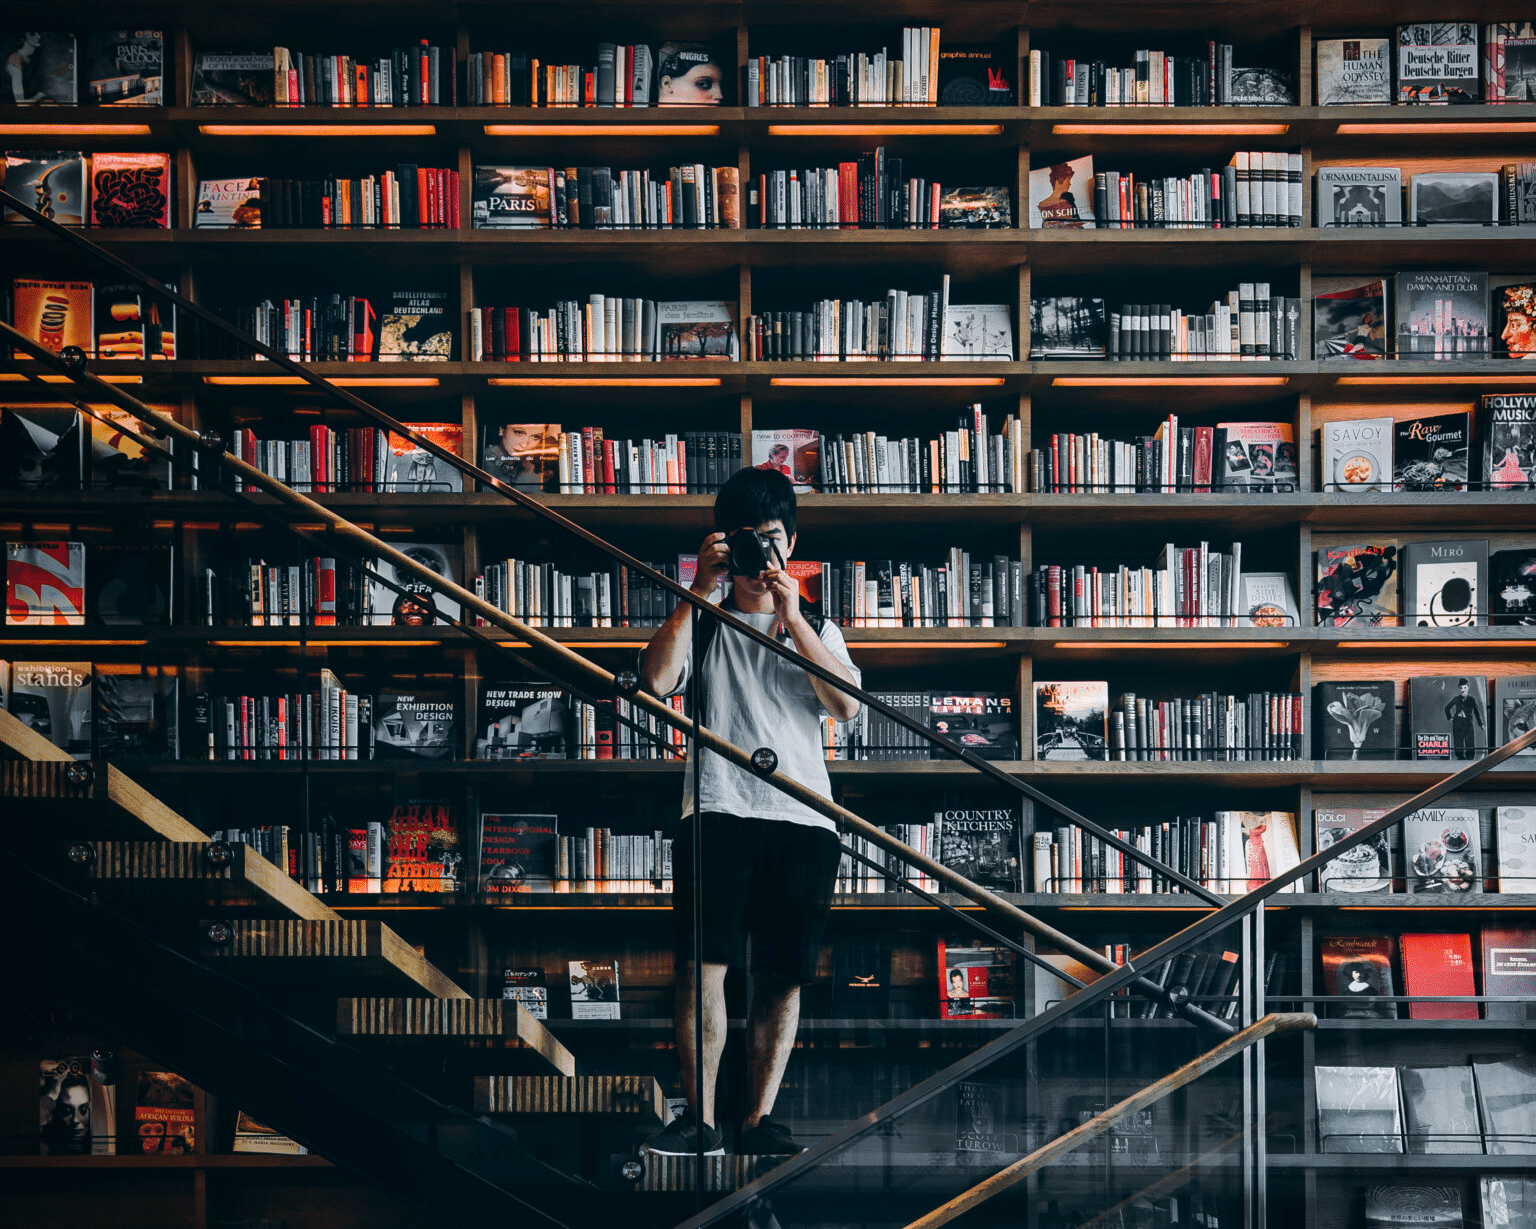 Man with a camera in a library